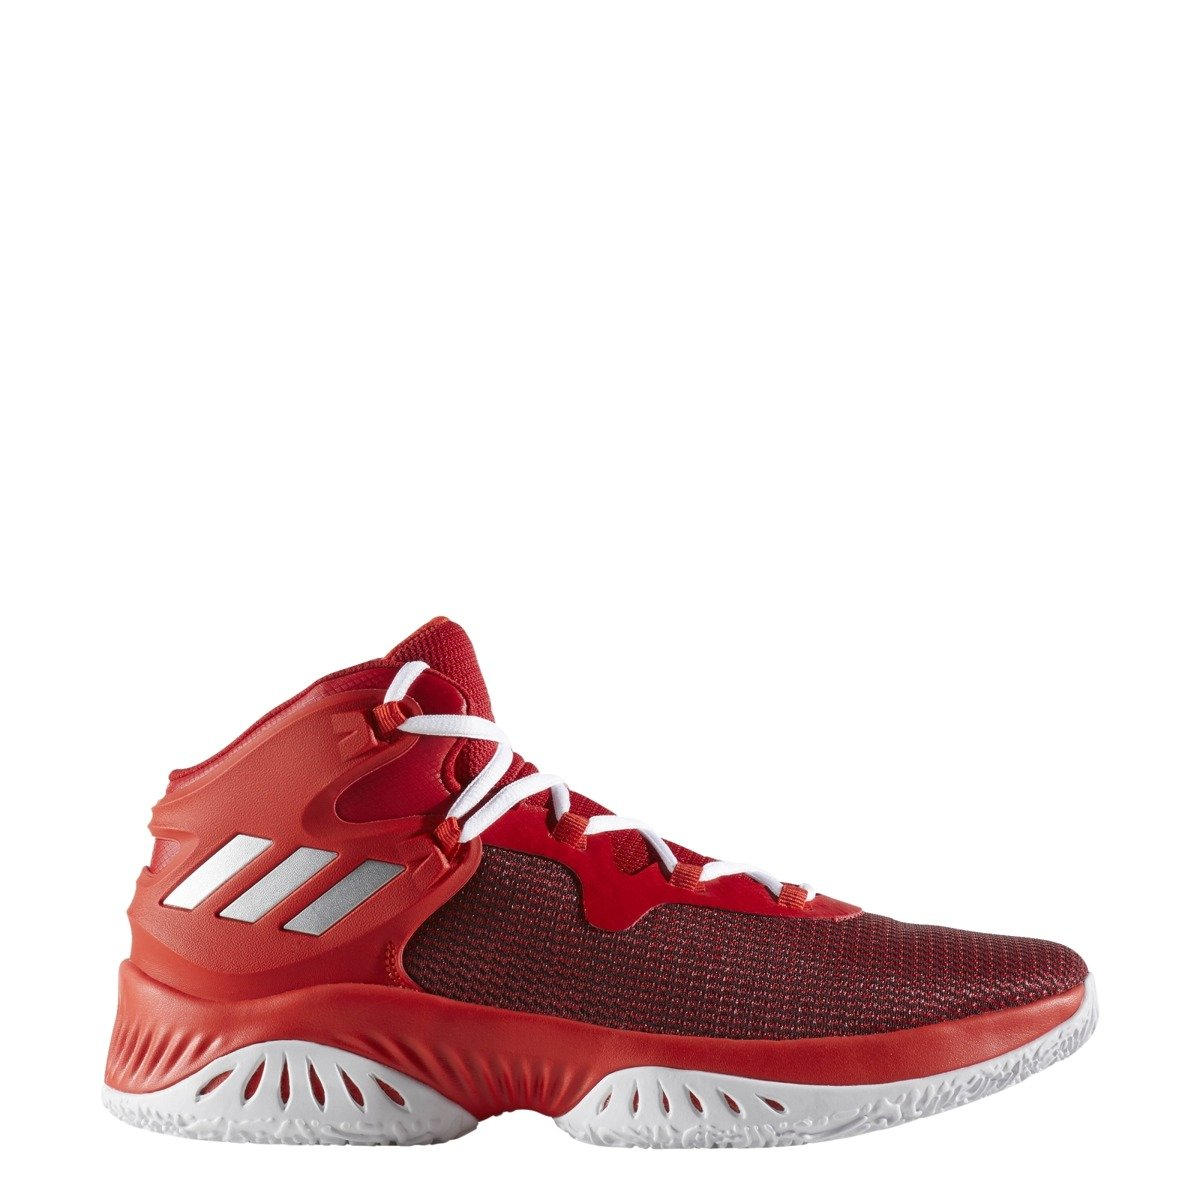 936d41dfd78 Adidas Explosive Bounce Shoes - BY3777 Red